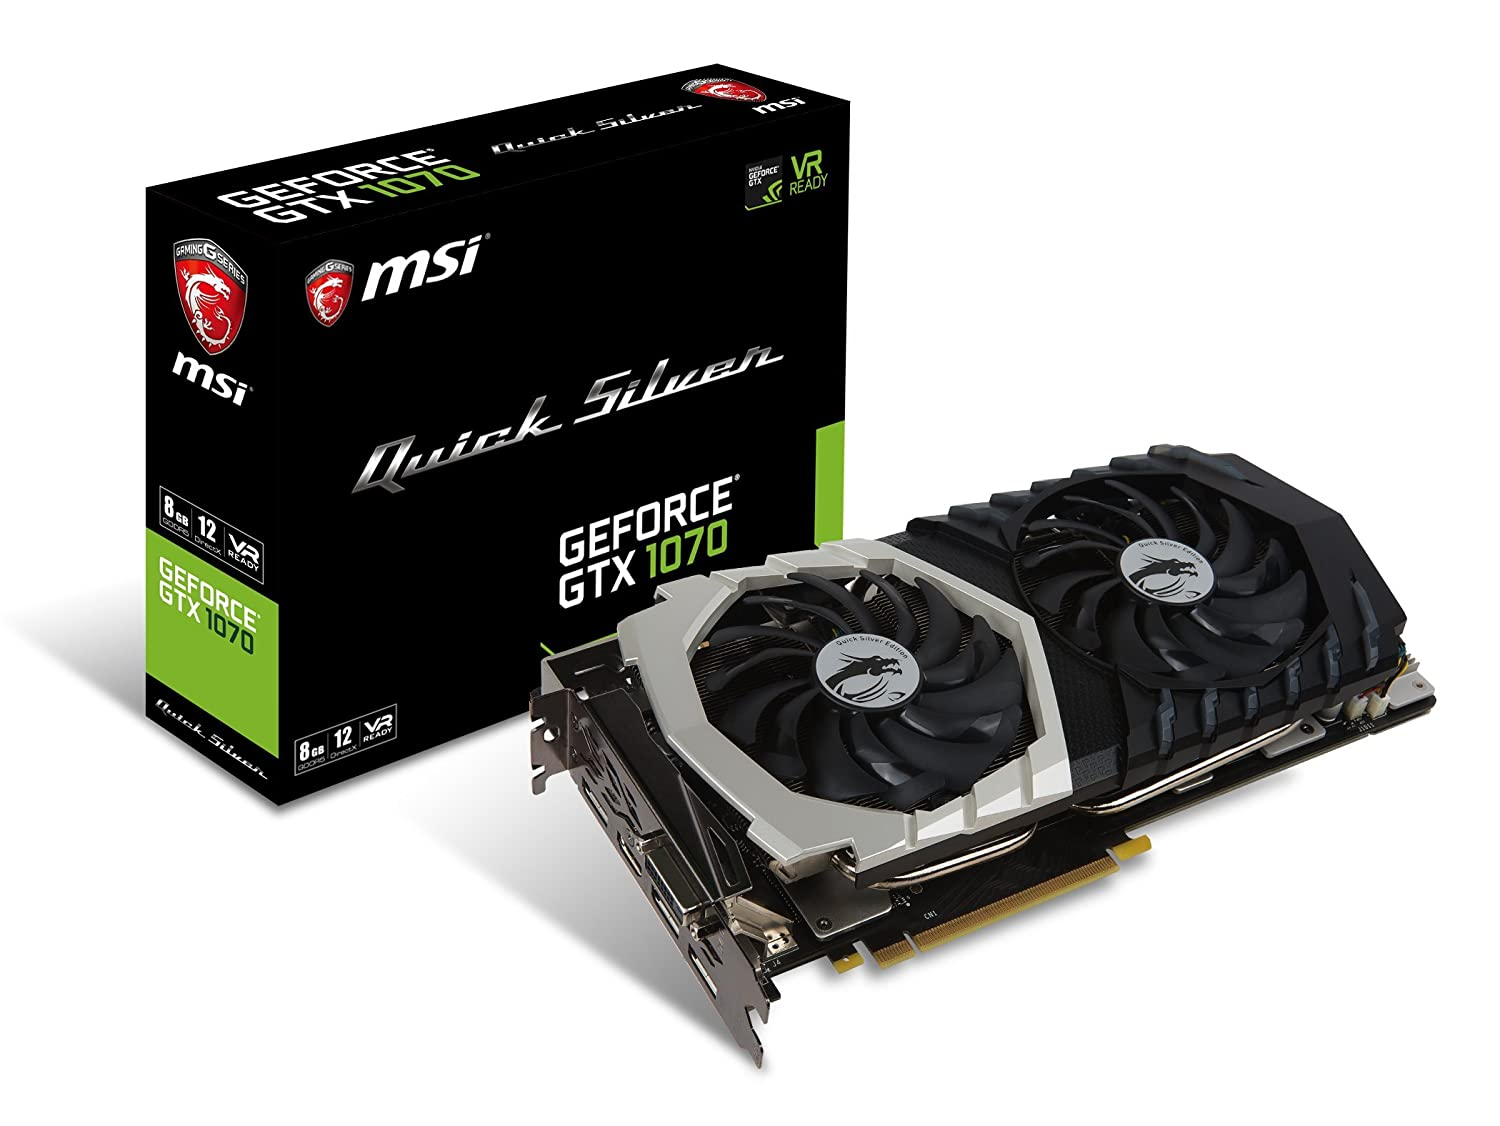 Amazon.com: MSI Gaming GeForce GTX 1070 8GB GDDR5 SLI DirectX 12 VR Ready  Graphics Card (GTX 1070 Quick Silver 8G OC): Computers & Accessories